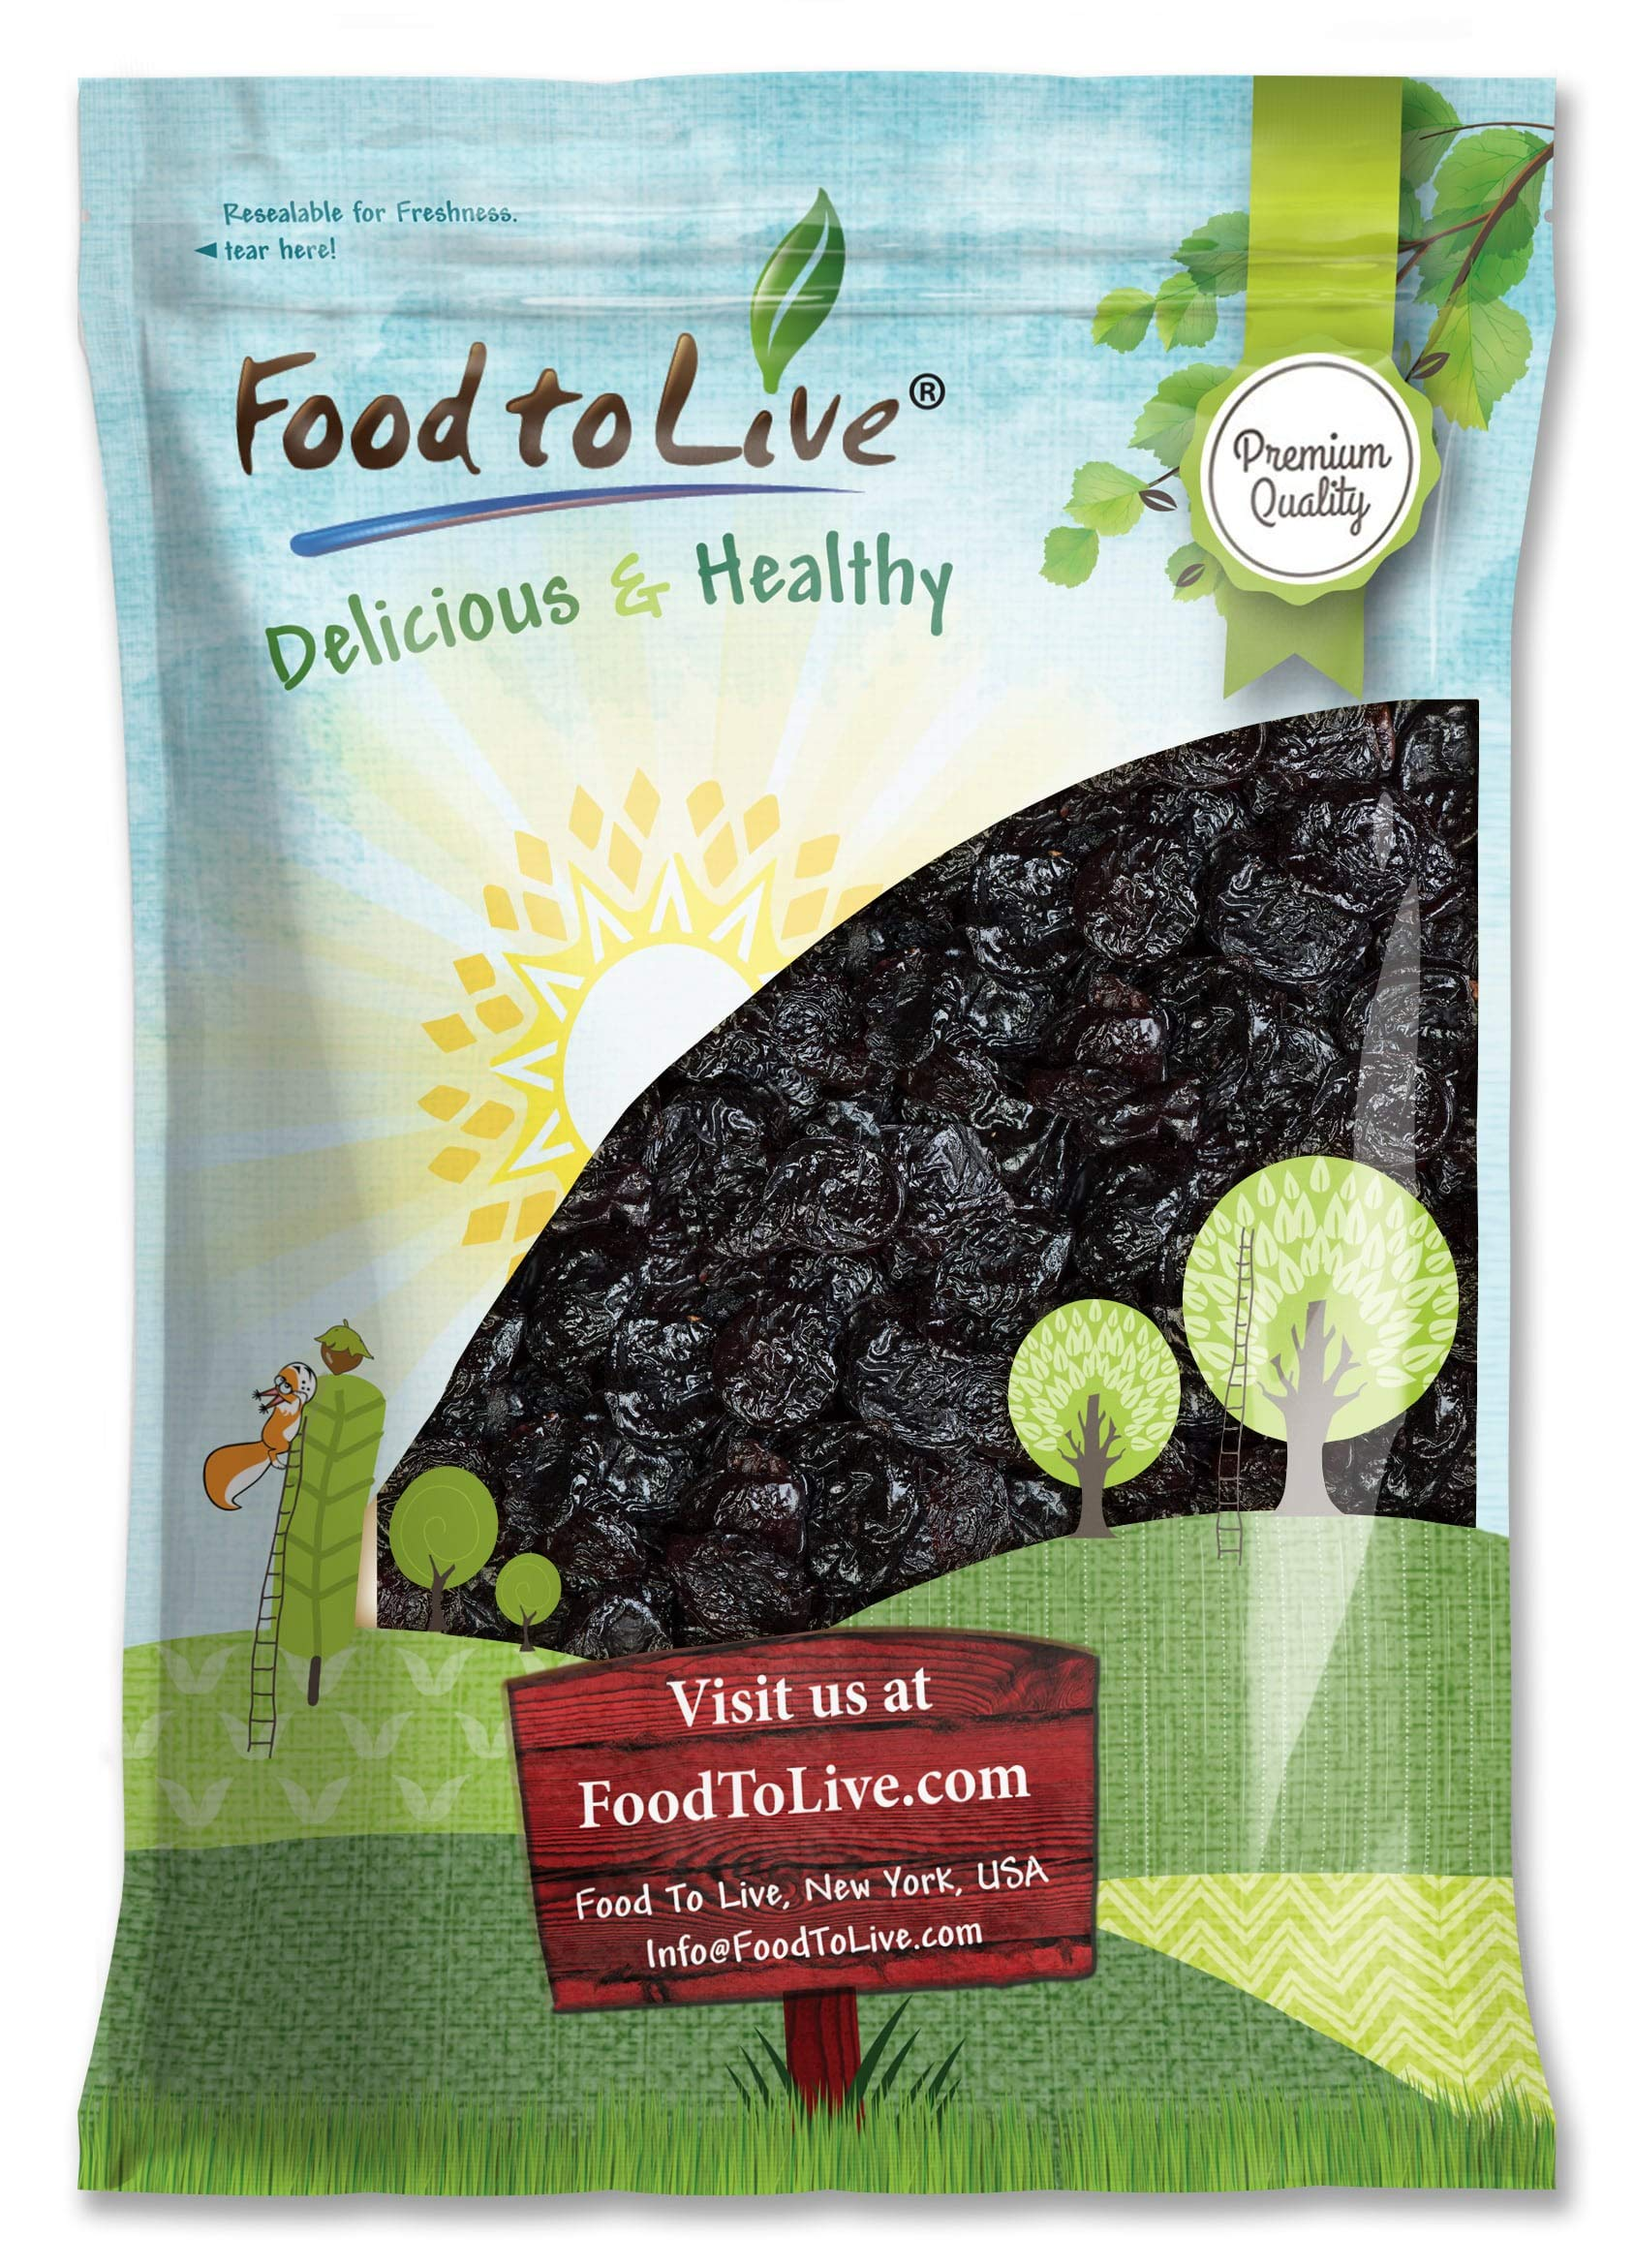 Pitted Prunes, 15 Pounds - Whole Dried Plums, Unsulfured, Unsweetened, Non-Infused, Non-Oil Added, Non-Irradiated, Vegan, Raw, Bulk by Food to Live